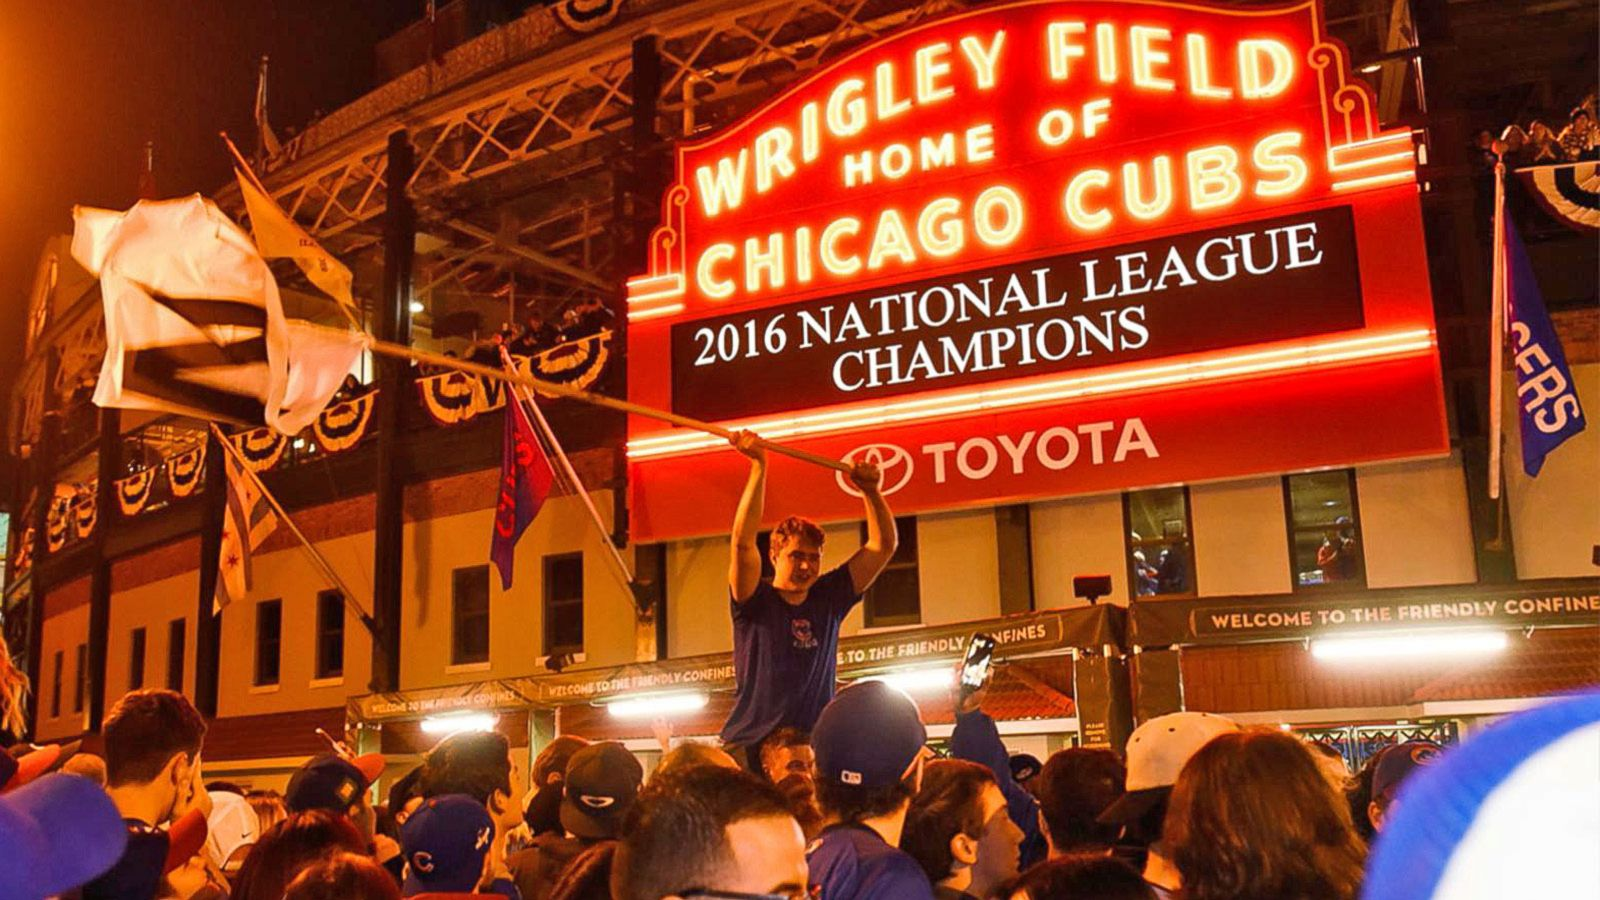 VIDEO: Chicago Cubs and Cleveland Indians Will Face Off in Historic World Series